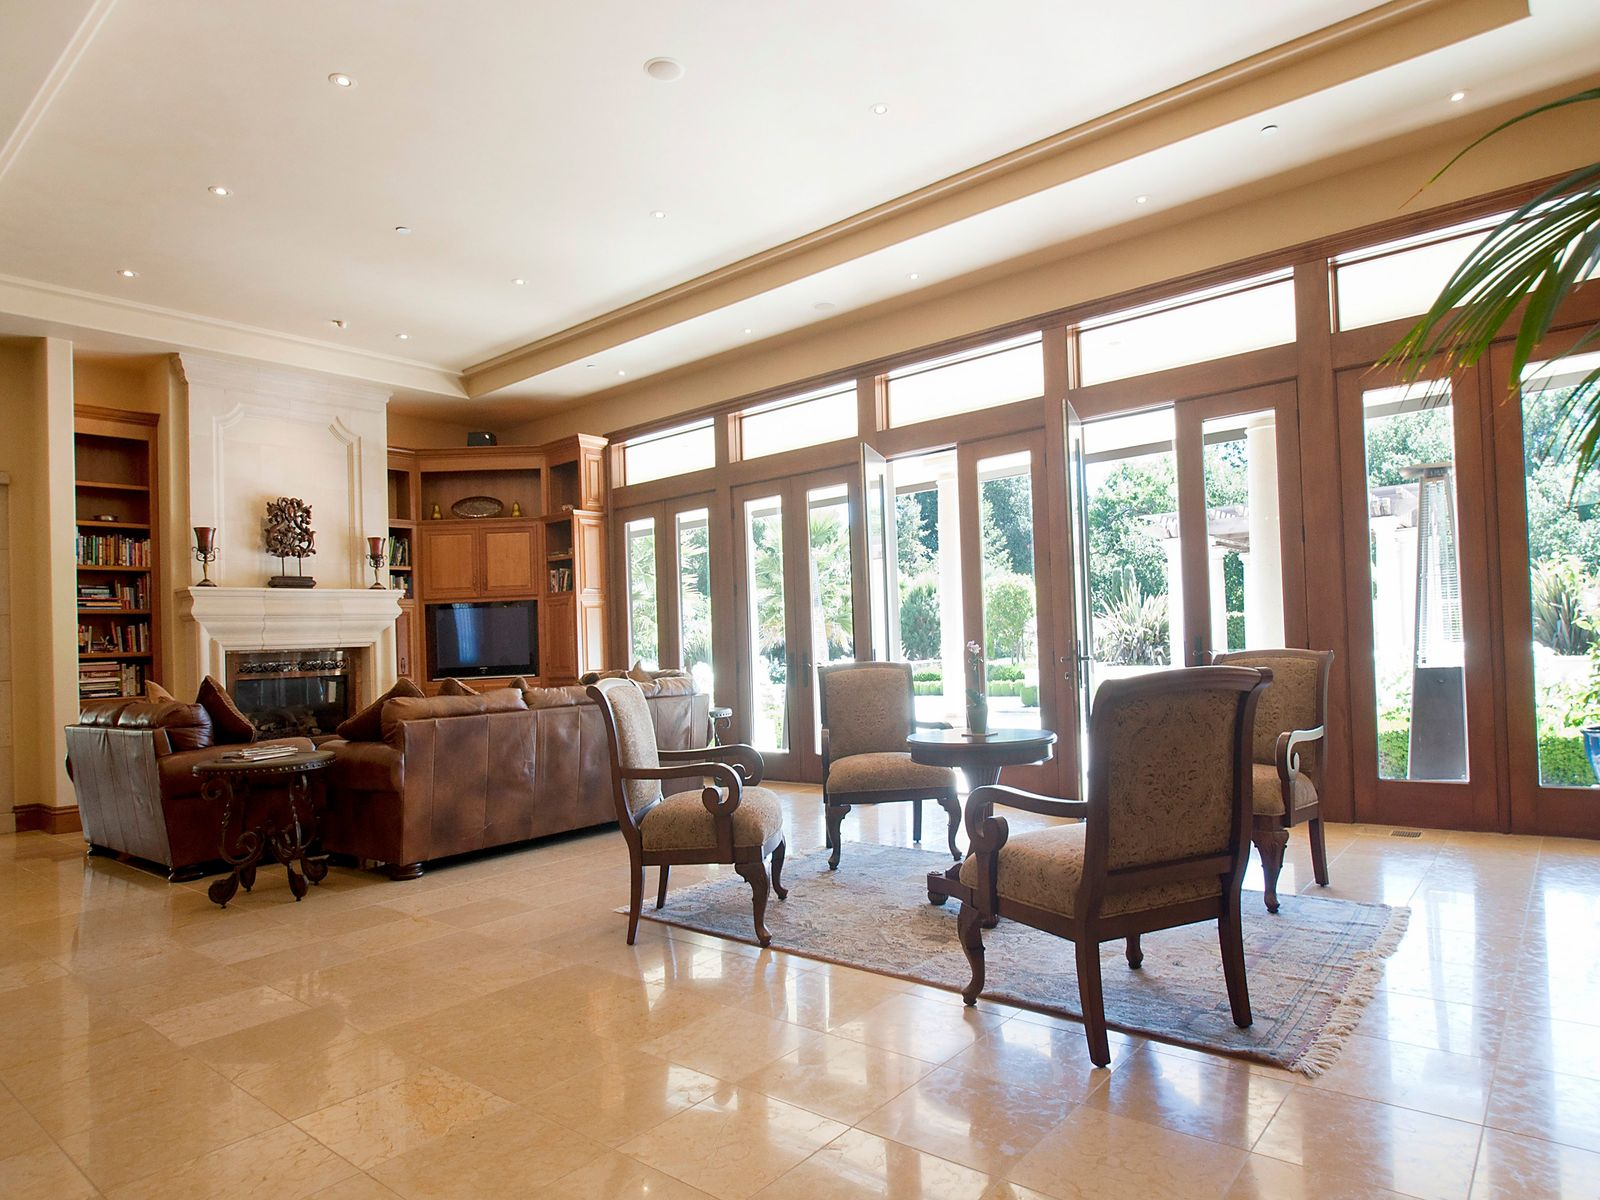 Greatroom has French doors leading outdoors